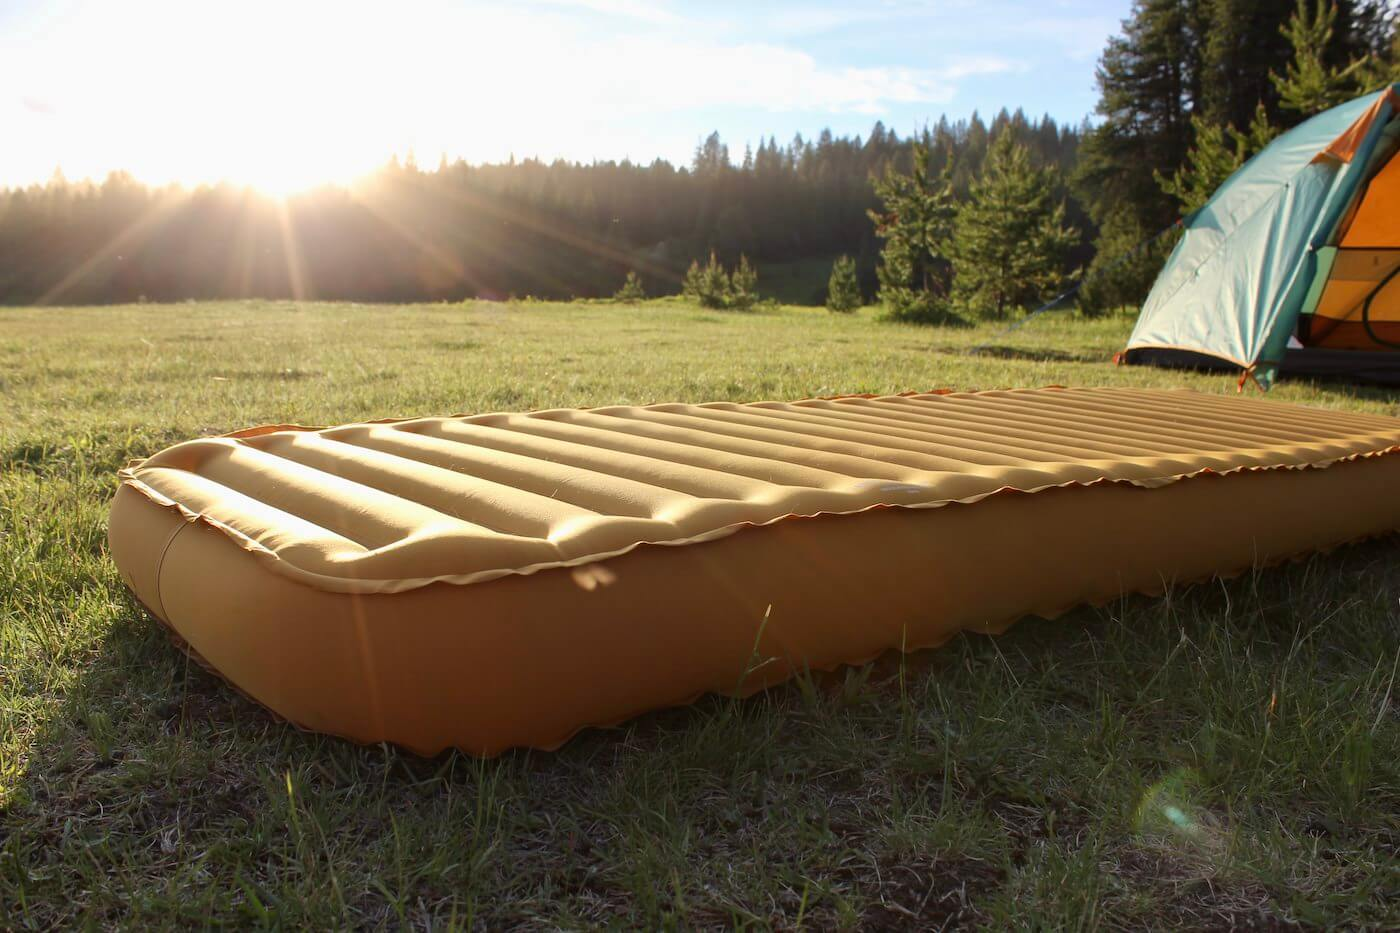 This photo shows the REI Camp Dreamer Insulated Air Sleeping Pad inflated outside at a camping spot.